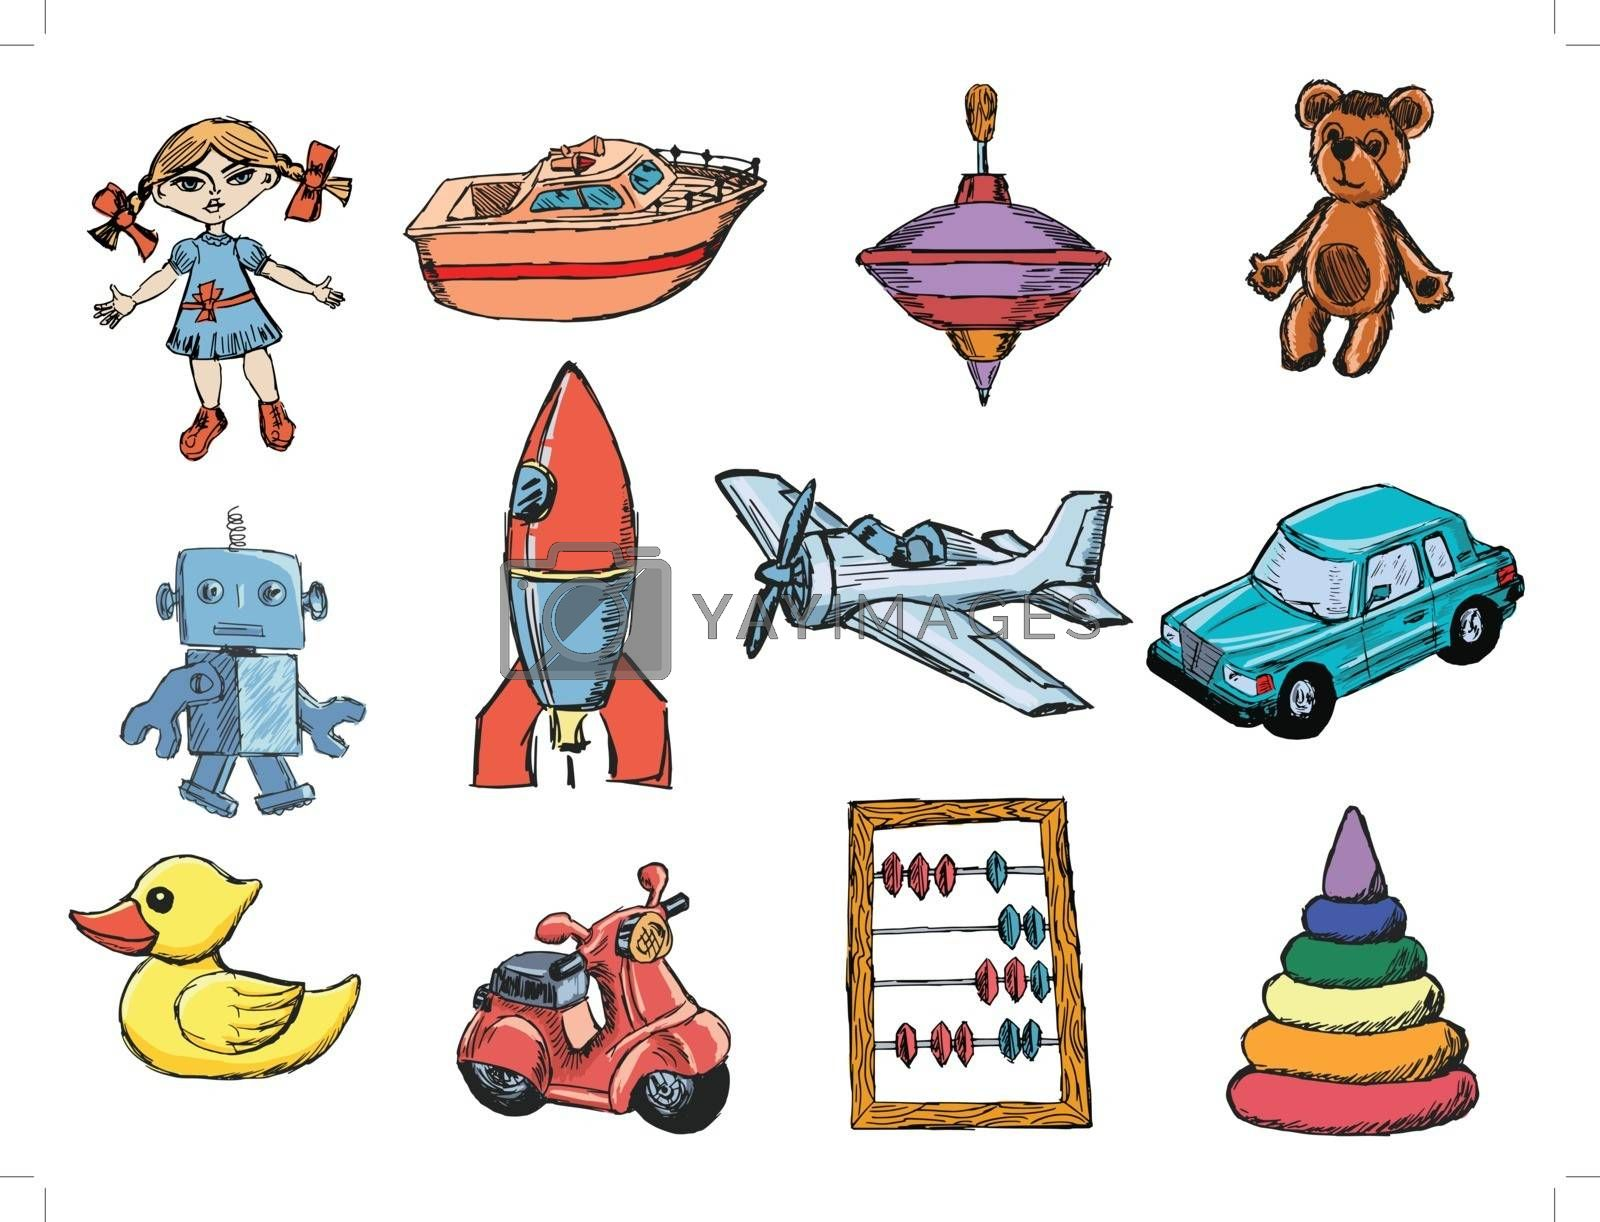 Royalty free image of set of toys by Perysty